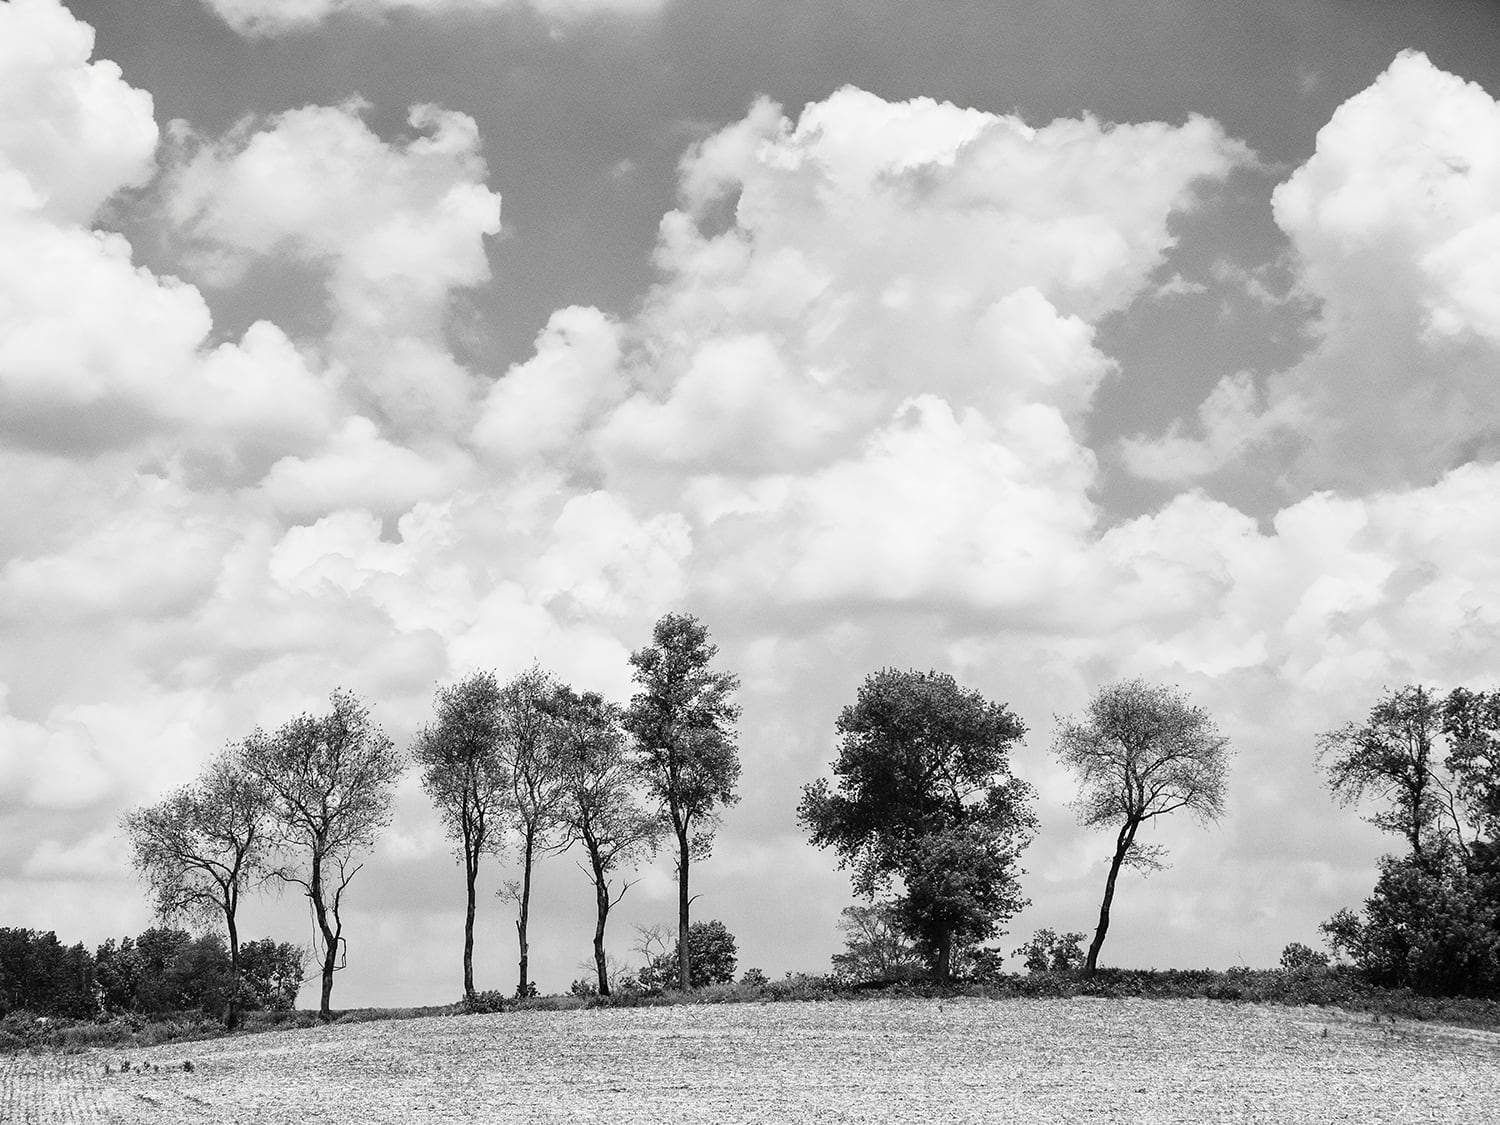 Tree Line Under A Cloudy Sky Black And White Photograph P5291637a Landscape Photography Nature Landscape Photography Landscape Photos